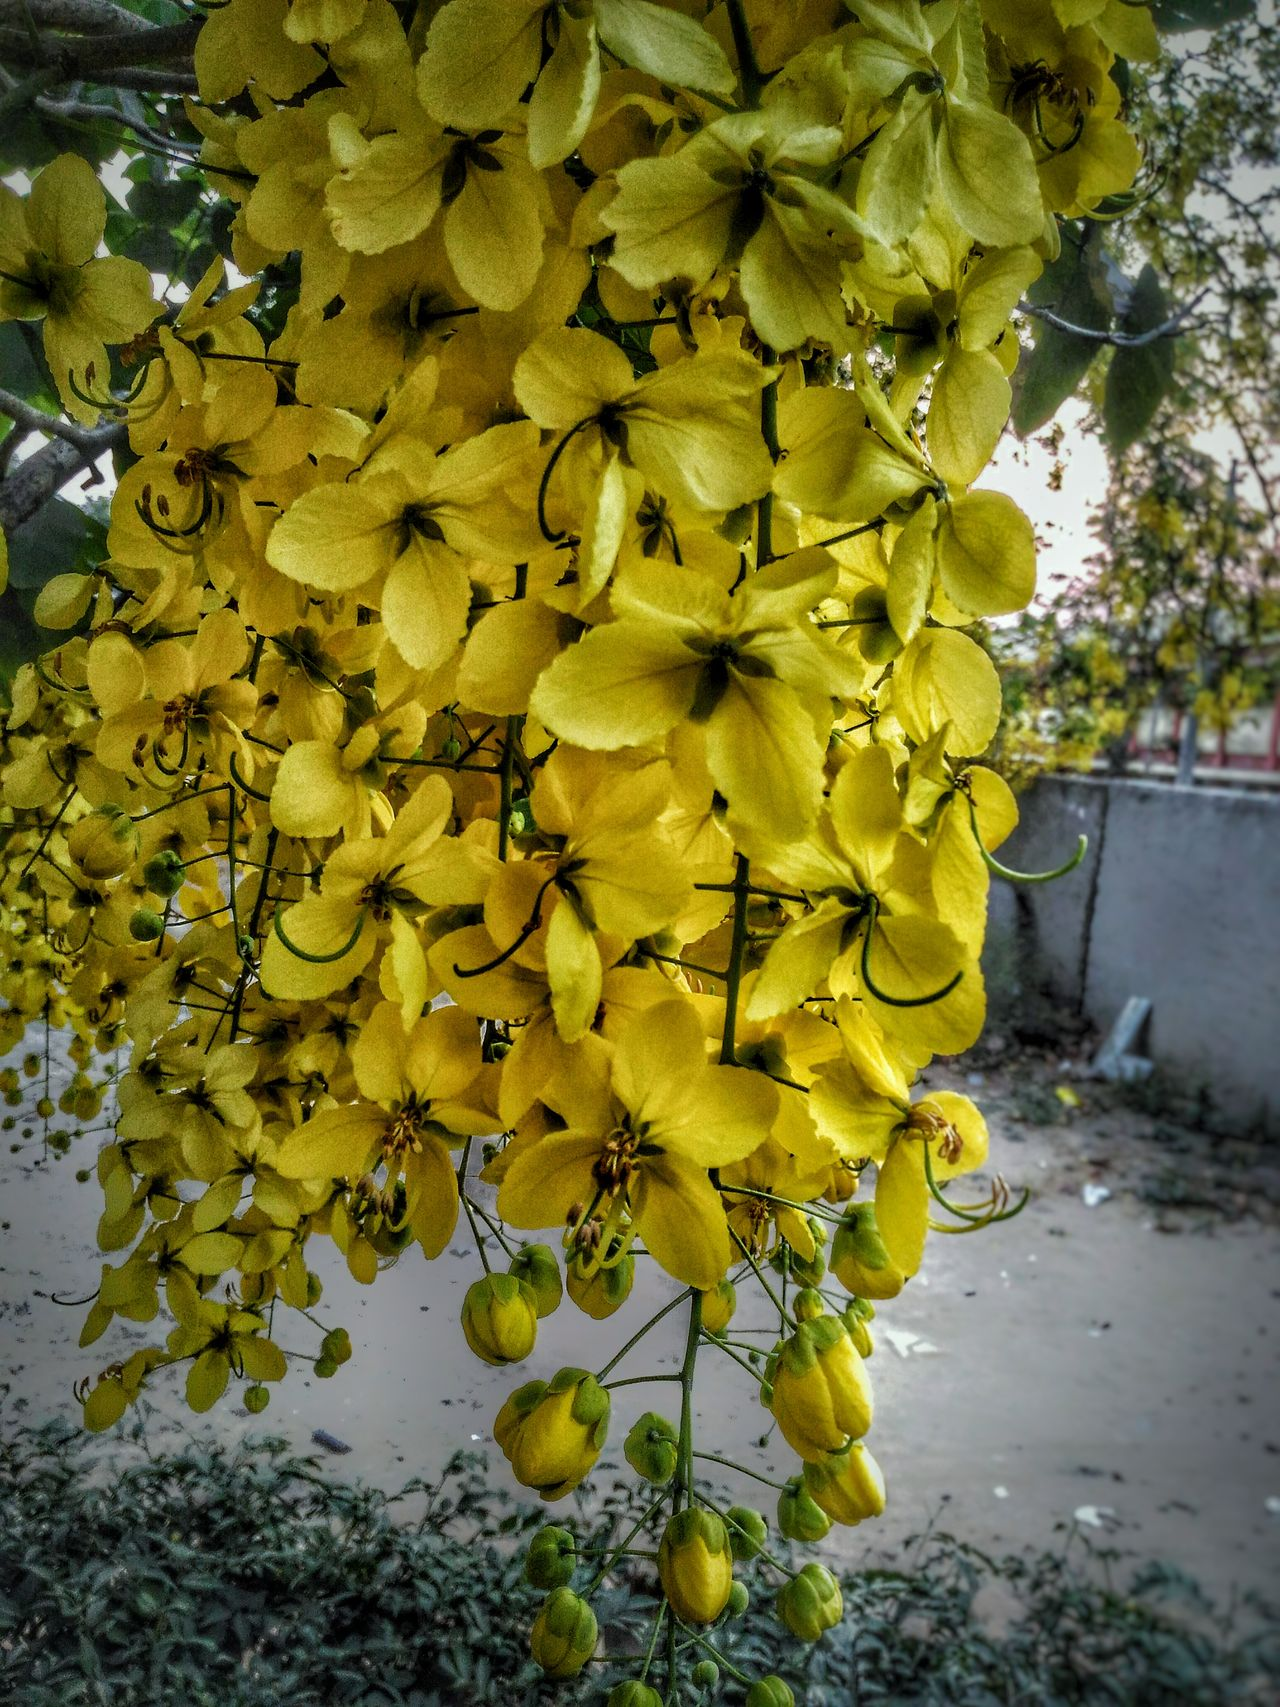 Every Flower is a Soul Blossming In nature Yellow Outdoors Beauty In Nature Freshness Flower Mobile Photography Photo Of The Day Mobilephotography EyeEm Gallery EymEm Nature Lovers Art Is Everywhere EymEmNewHere EyeEmNewHere EyeEm Diversity Visual Feast Mobilephoto Flowerporn Flower Collection Nature Photography Close-up No People Eyemmarket